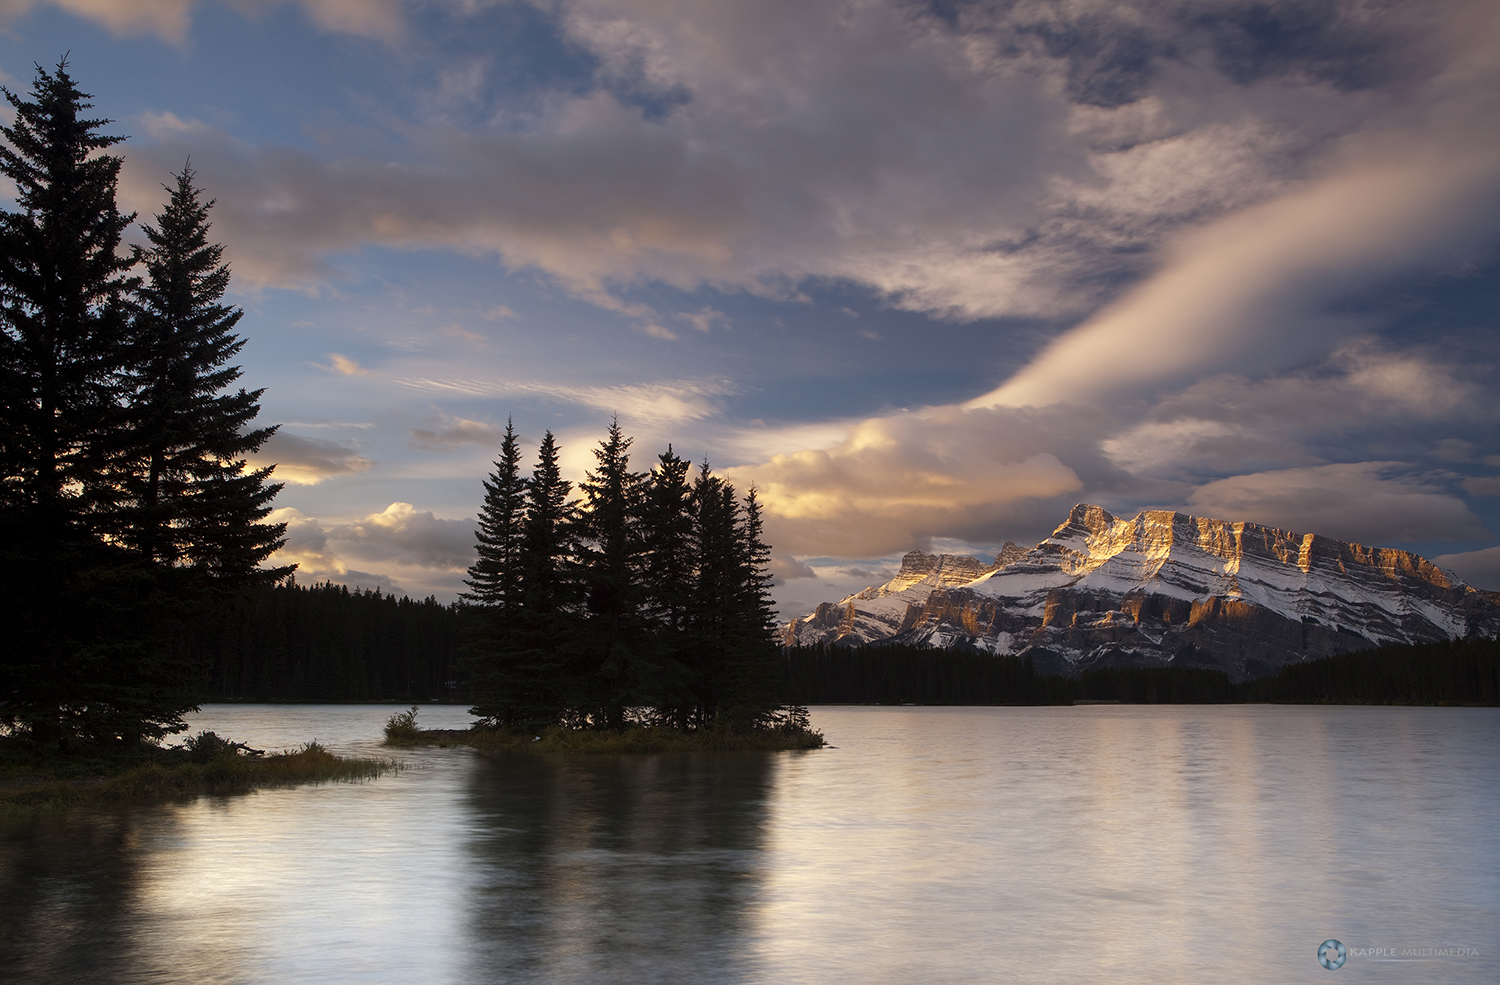 First light during sunrise at Two Jack Lake, Banff, Canada